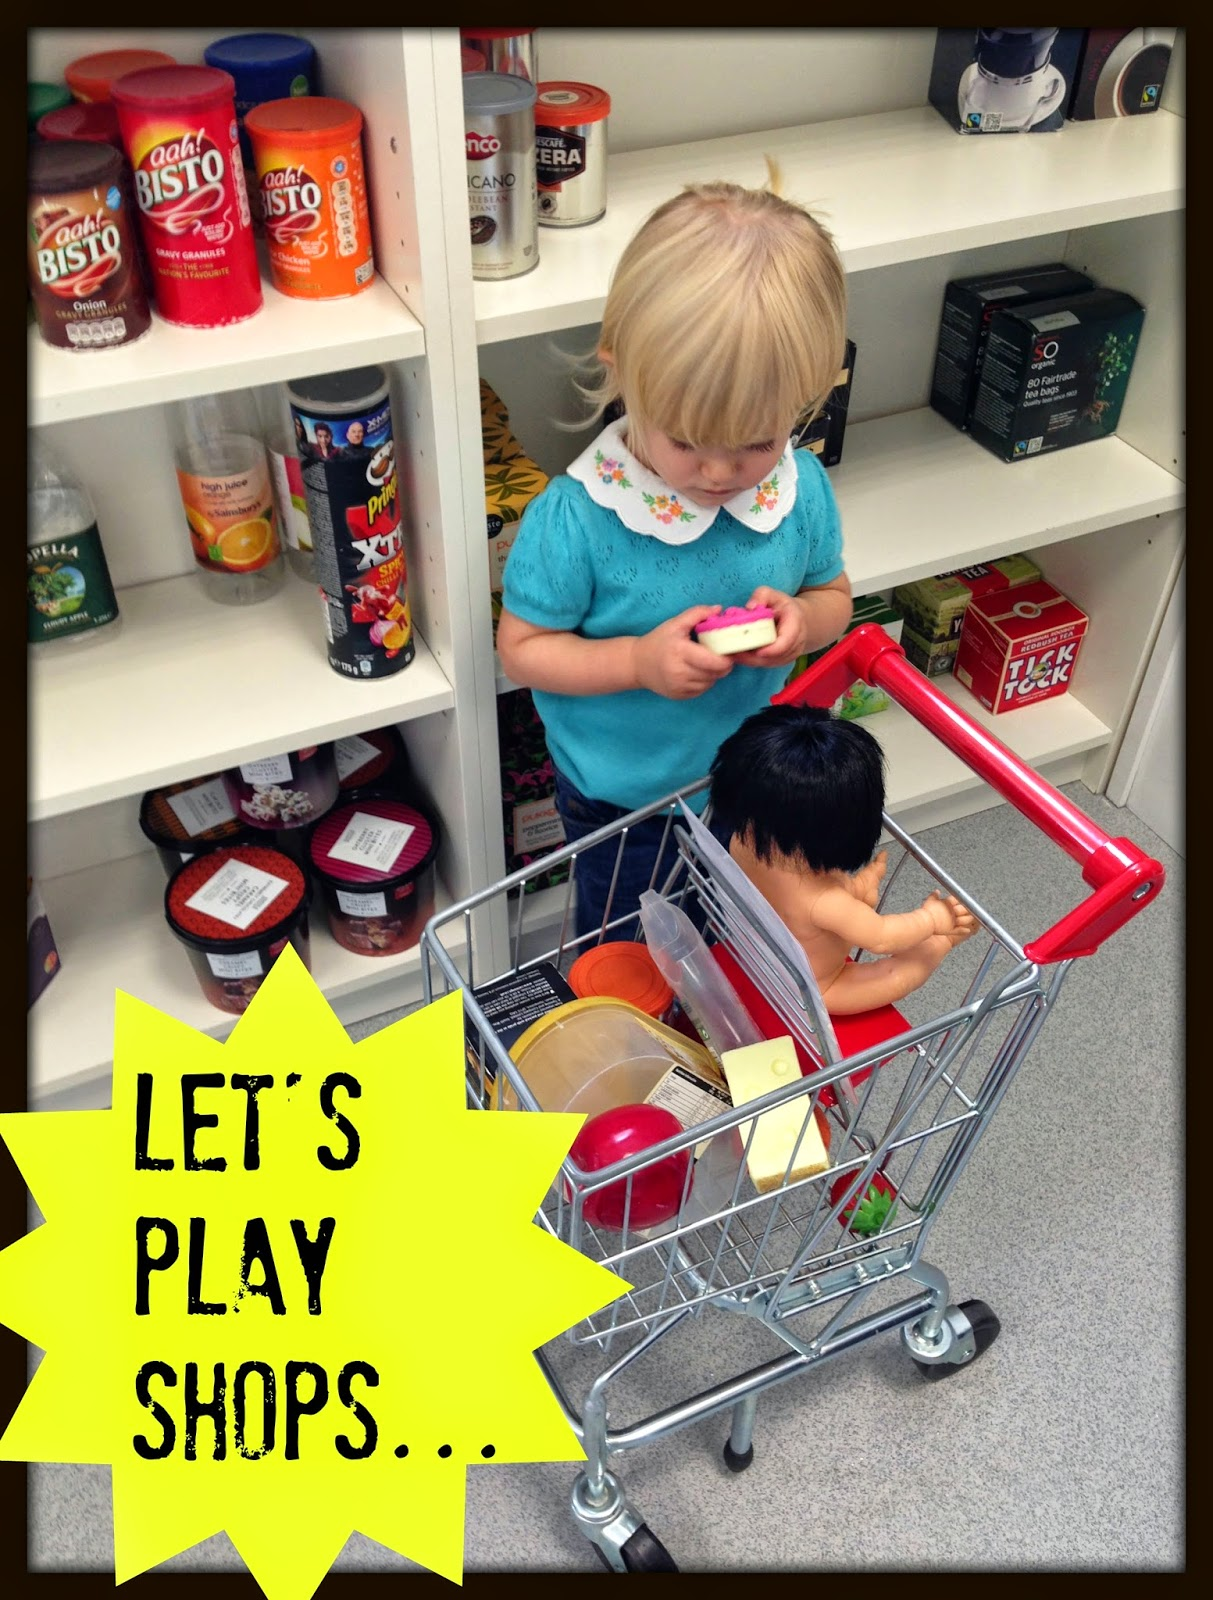 Chic wooden market stalls for imaginative play - and lots of accessories too! | wooden markets and shops | wooden market stalls | role play | play shops | early learning centre john lewis | le toy van | honey bake maker | hows | melissa and doug | play shopping | wooden food | wooden shopping times | shopping trolley | play shopping baskets | little street | shop | imaginative play | wooden toy shop | wooden macrons | wooden biscuits | mamasVIB | christmas gifts | shopping ides | kids toys | learning toys | busy bees || market street | kids shopping bags